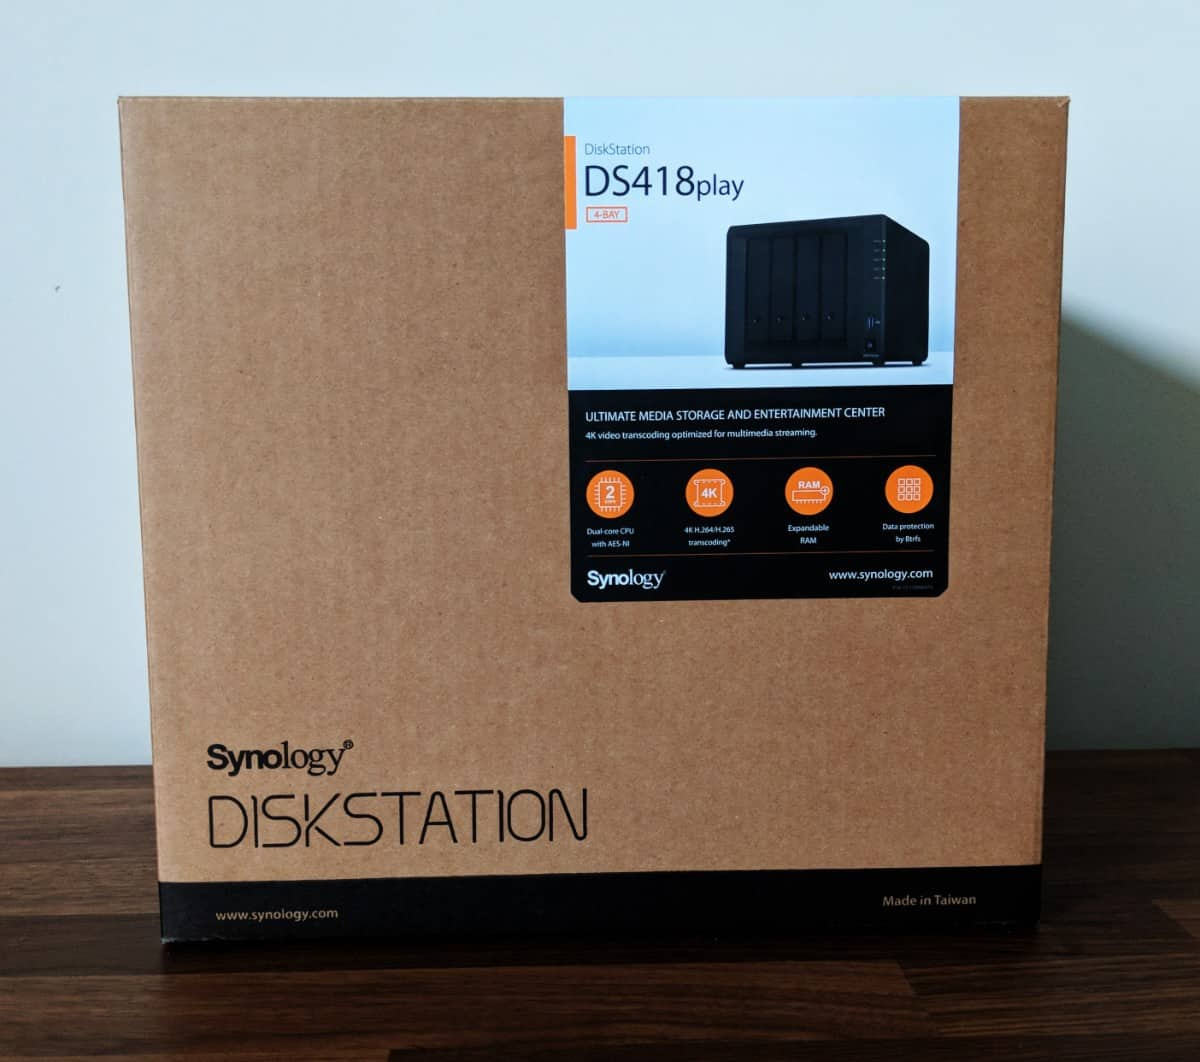 Synology-DS418play-Photos-16 Synology DS418play Review